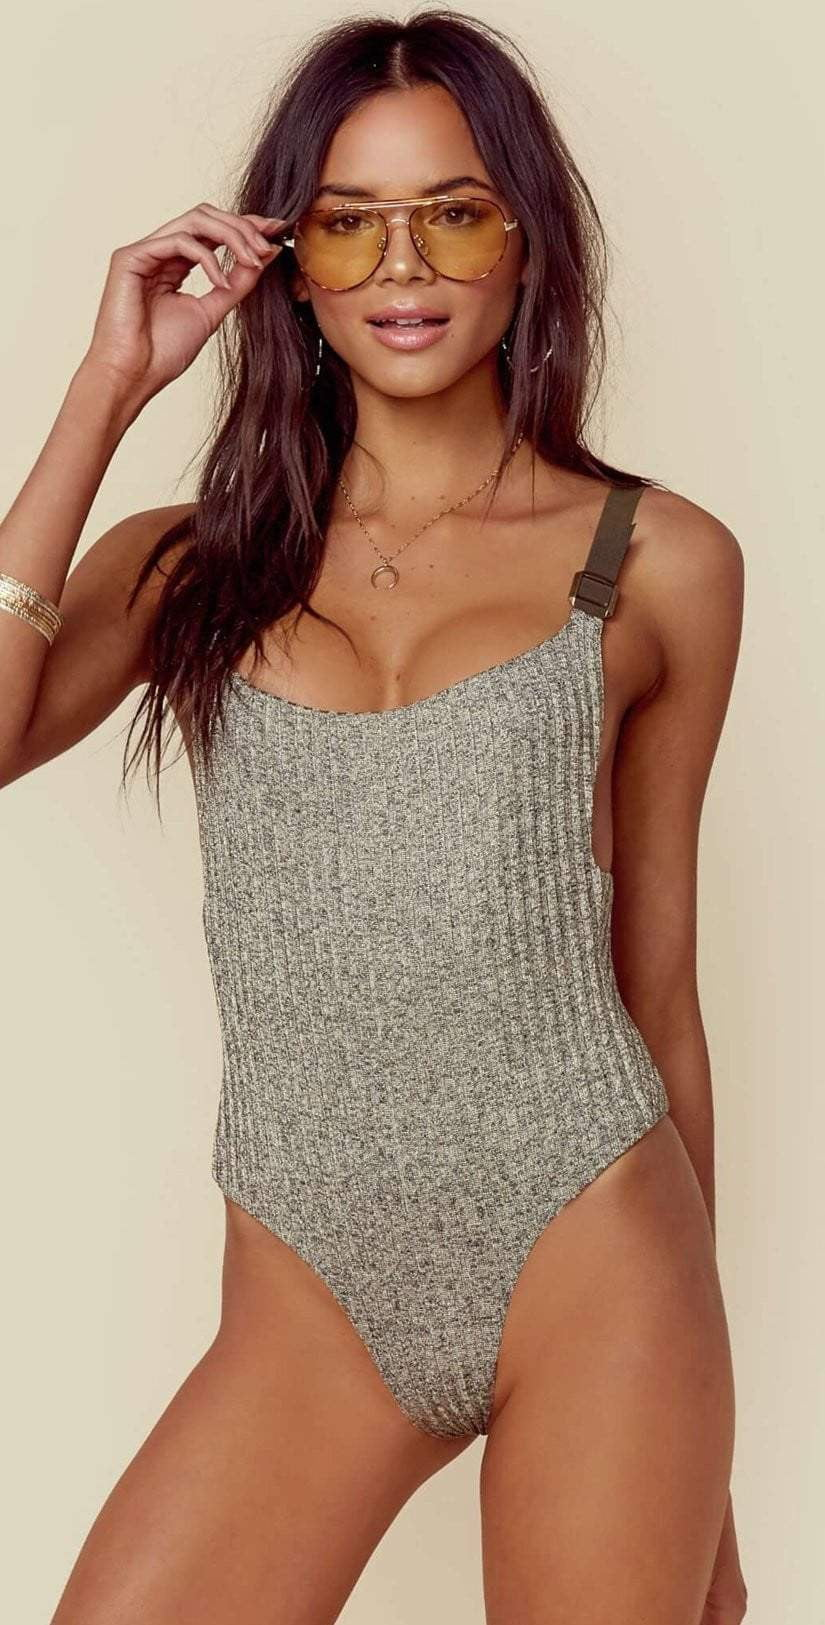 Blue Life Buckled Overall One Piece in Tarnished Gold 444-9464-TAR: